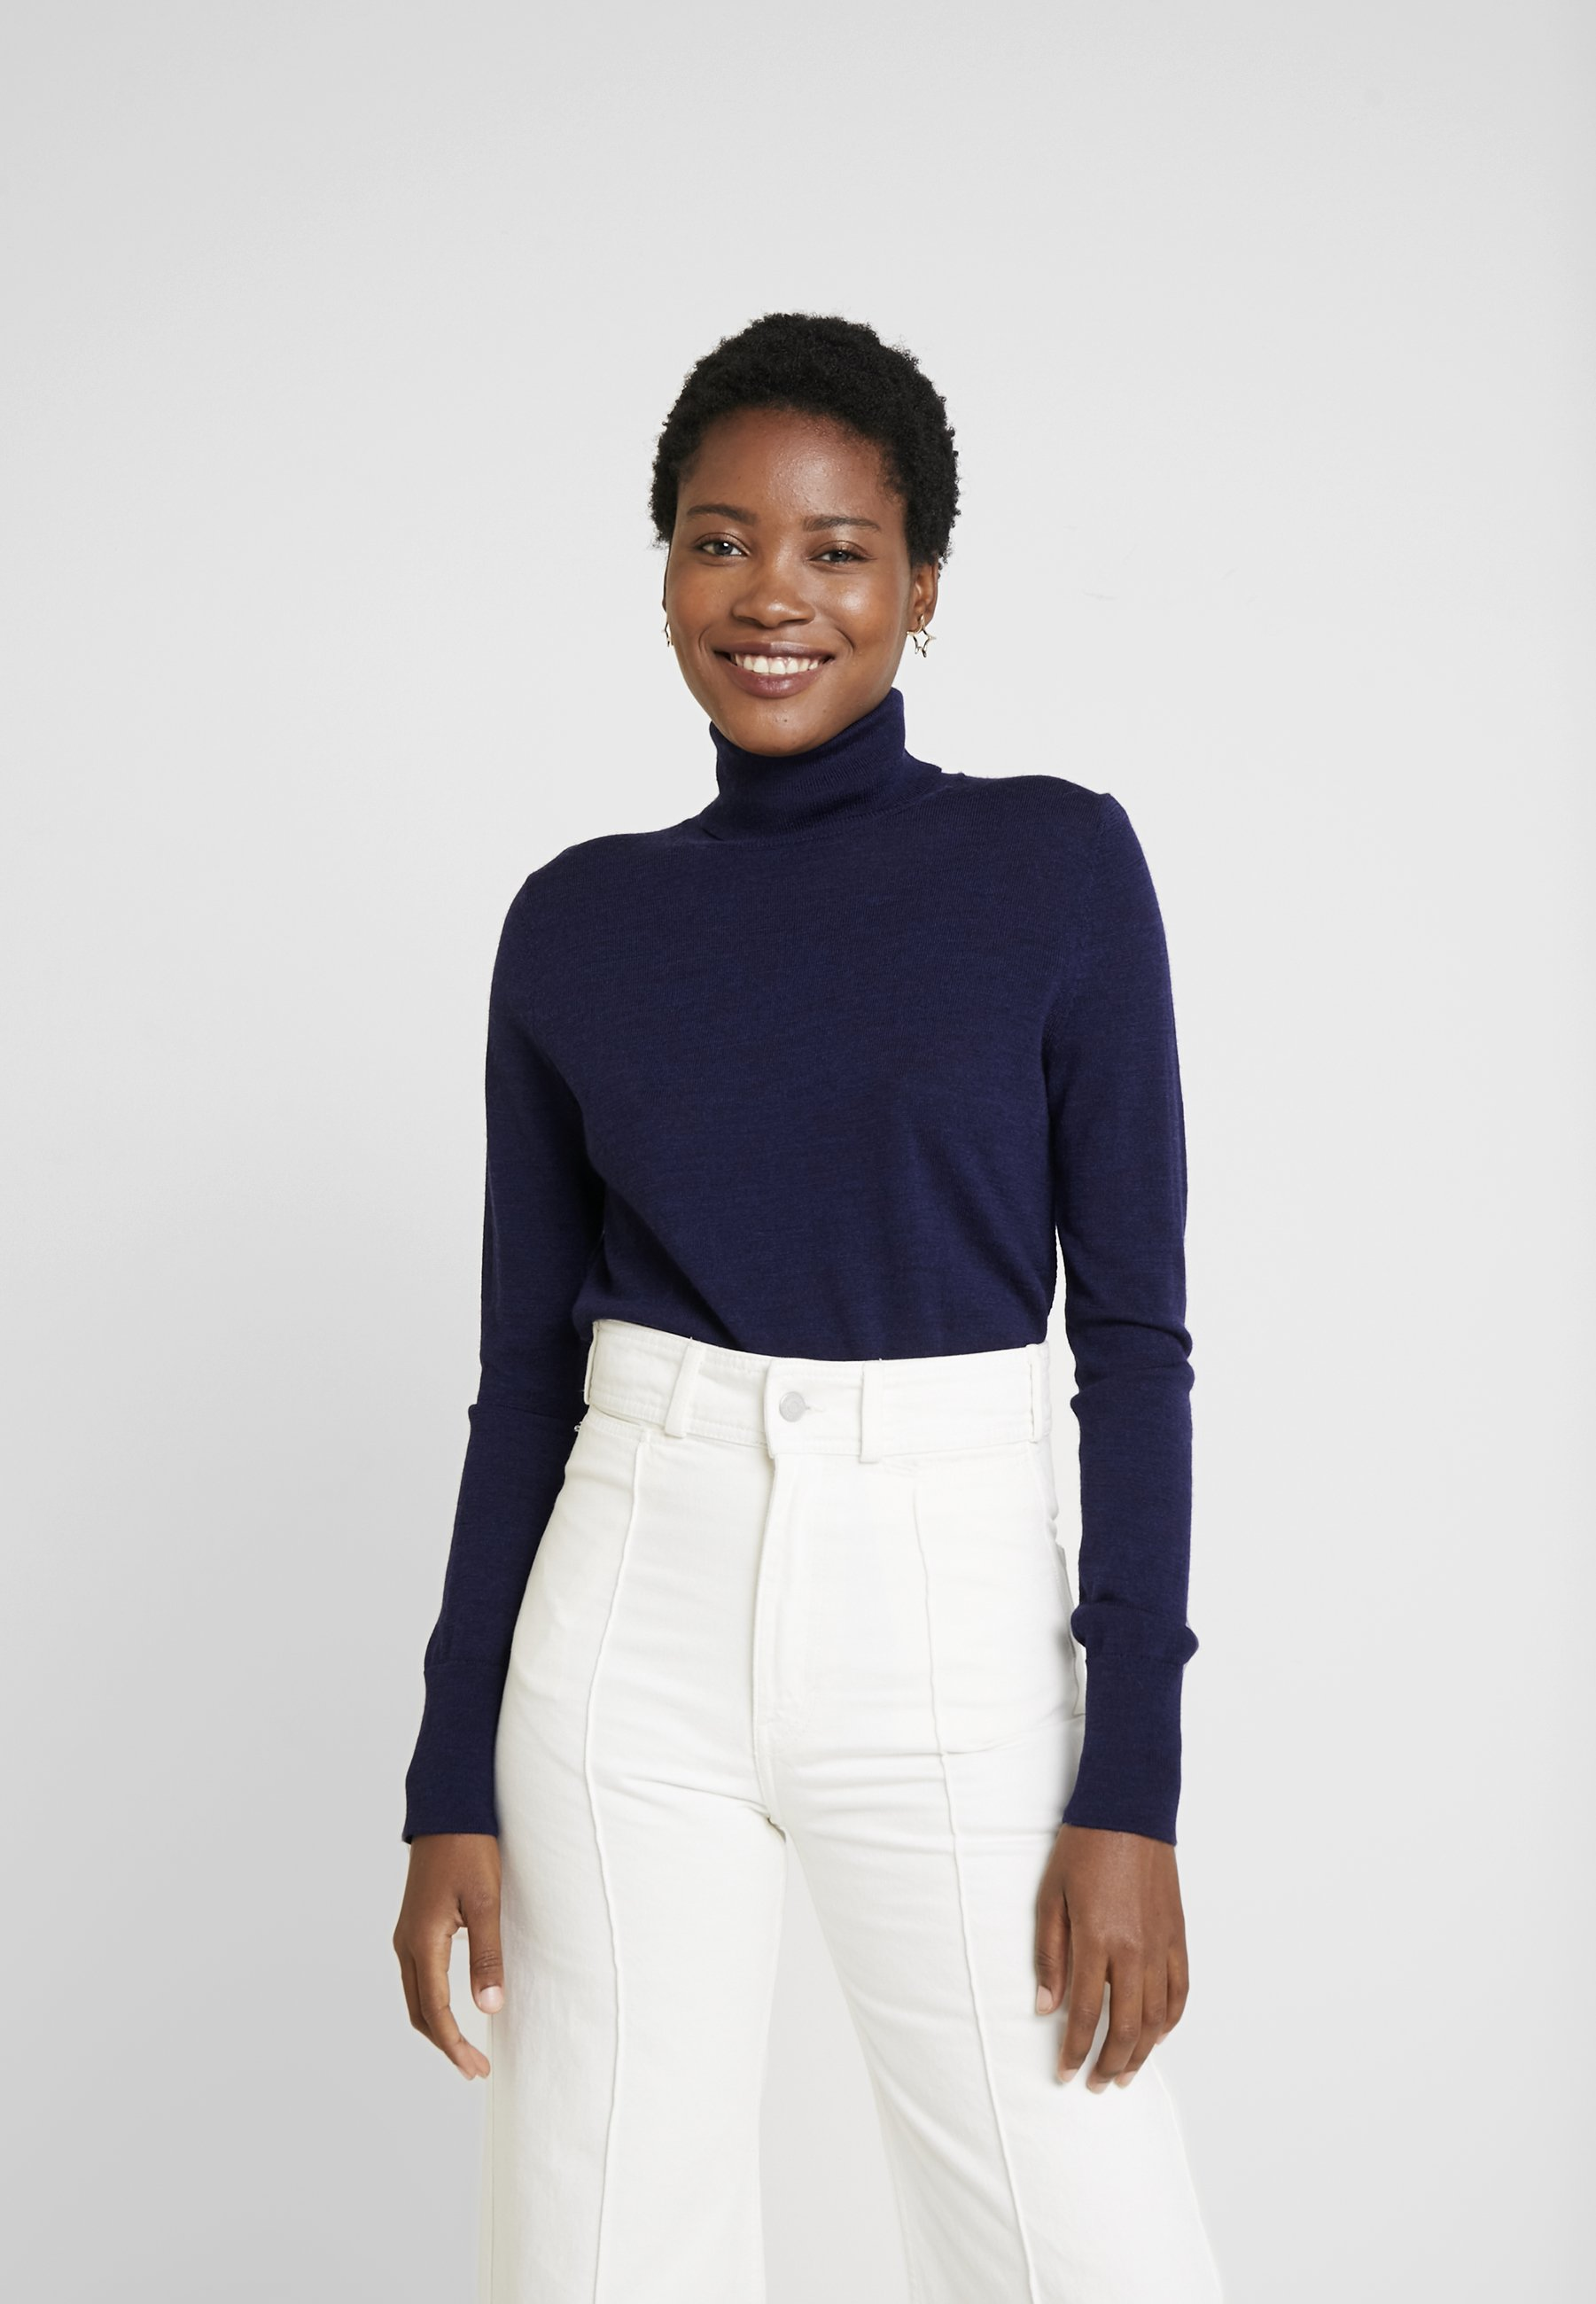 Gap Uniform TurtleneckMaglione Uniform Gap Navy TurtleneckMaglione Gap TurtleneckMaglione Navy Uniform Navy mN8vn0w